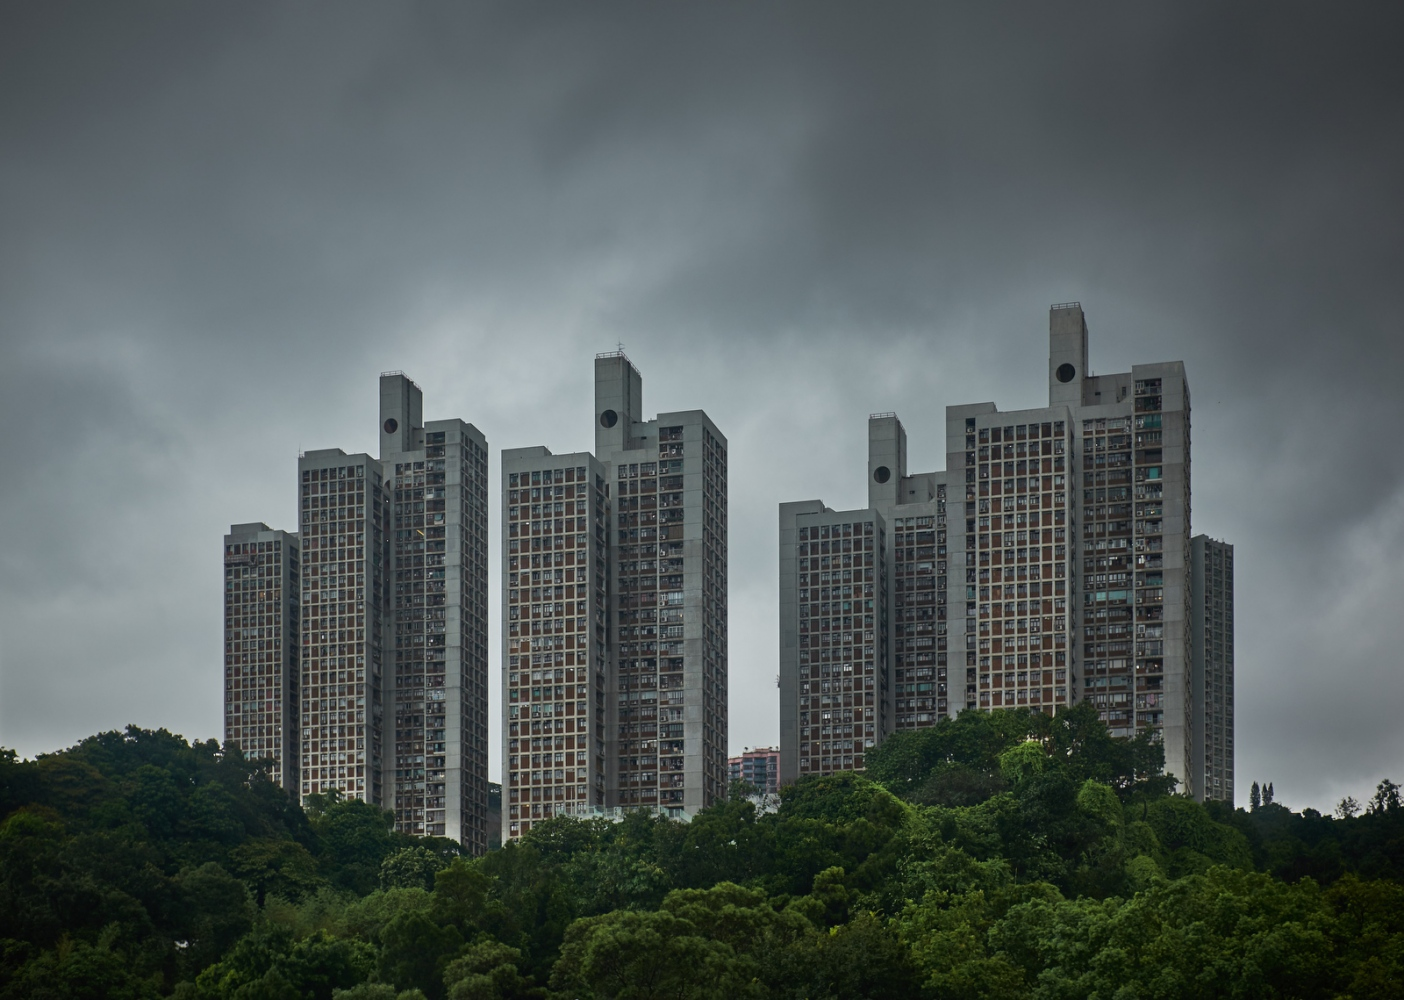 High-rise apartment buildings in the New Territories, Hong Kong.